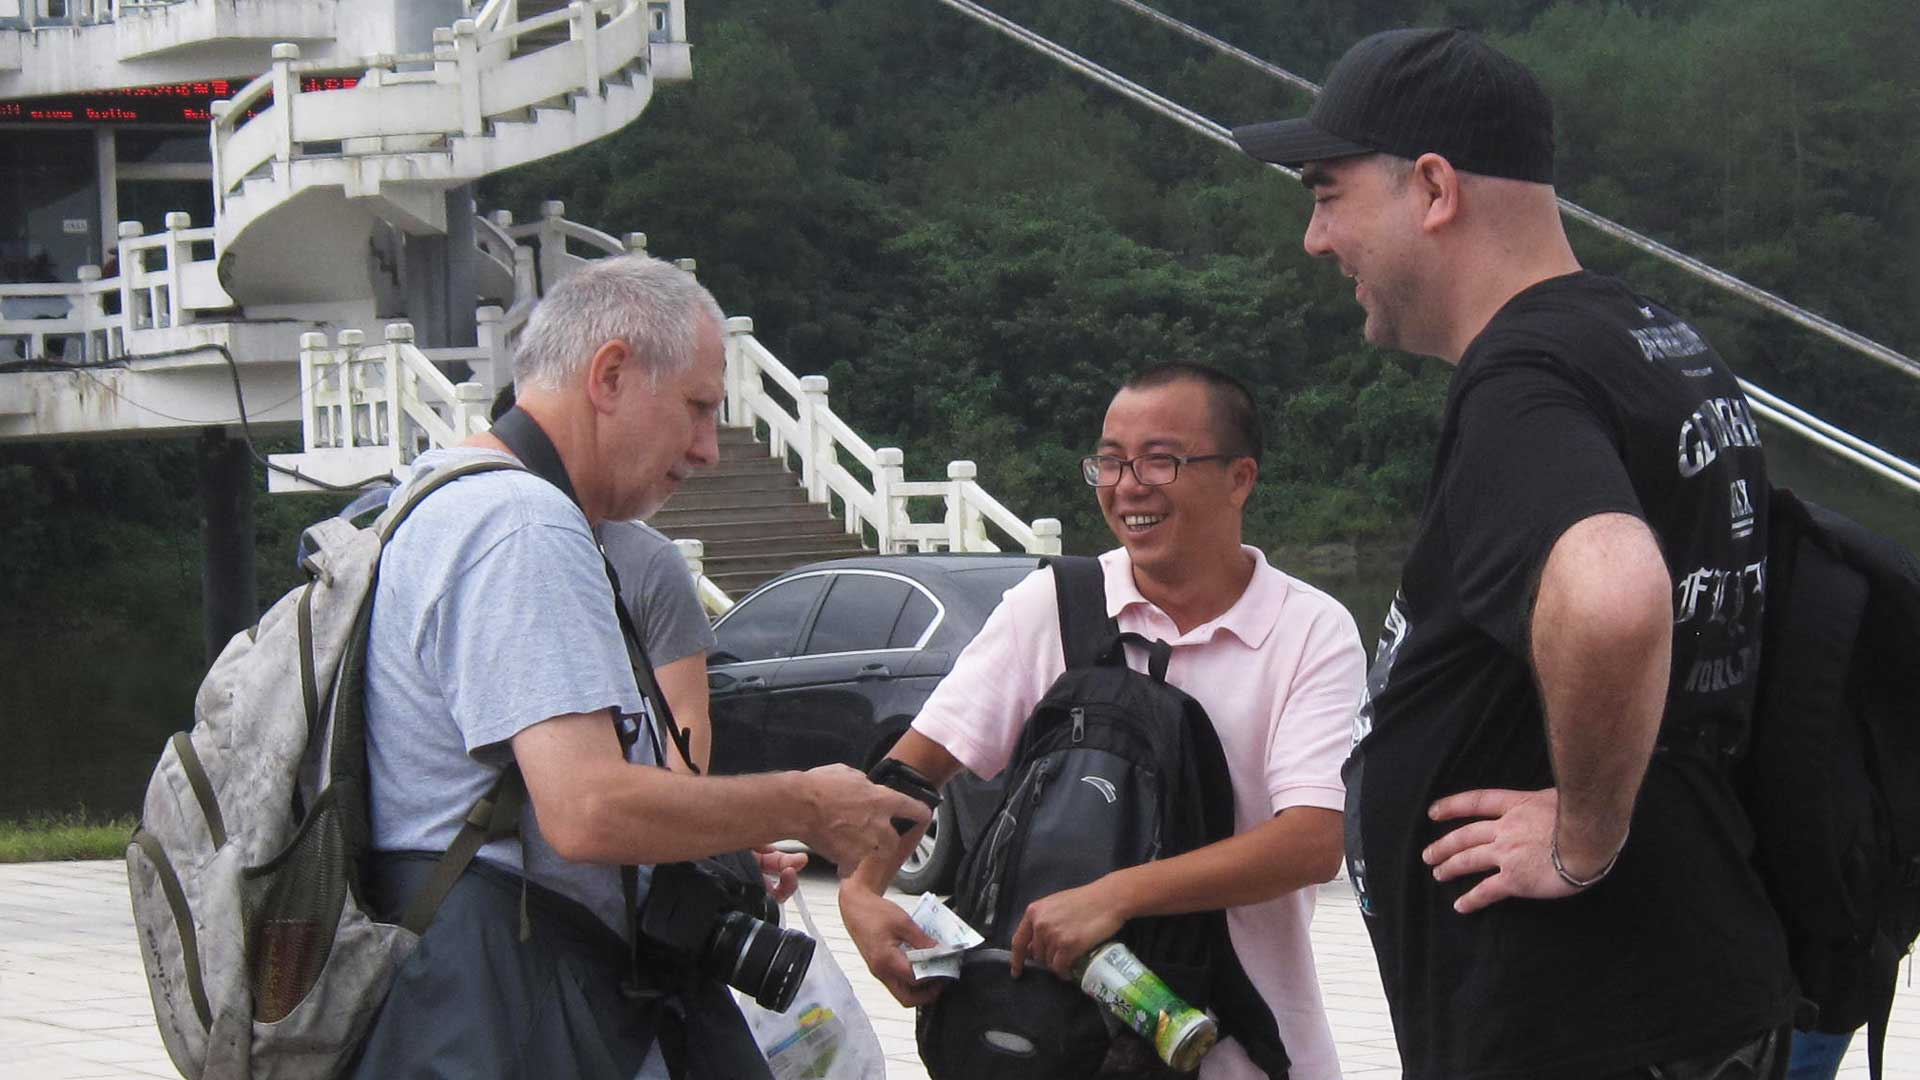 Mystery researchers Luc Bürgin and Gregor Spörri in Huangshan, China.